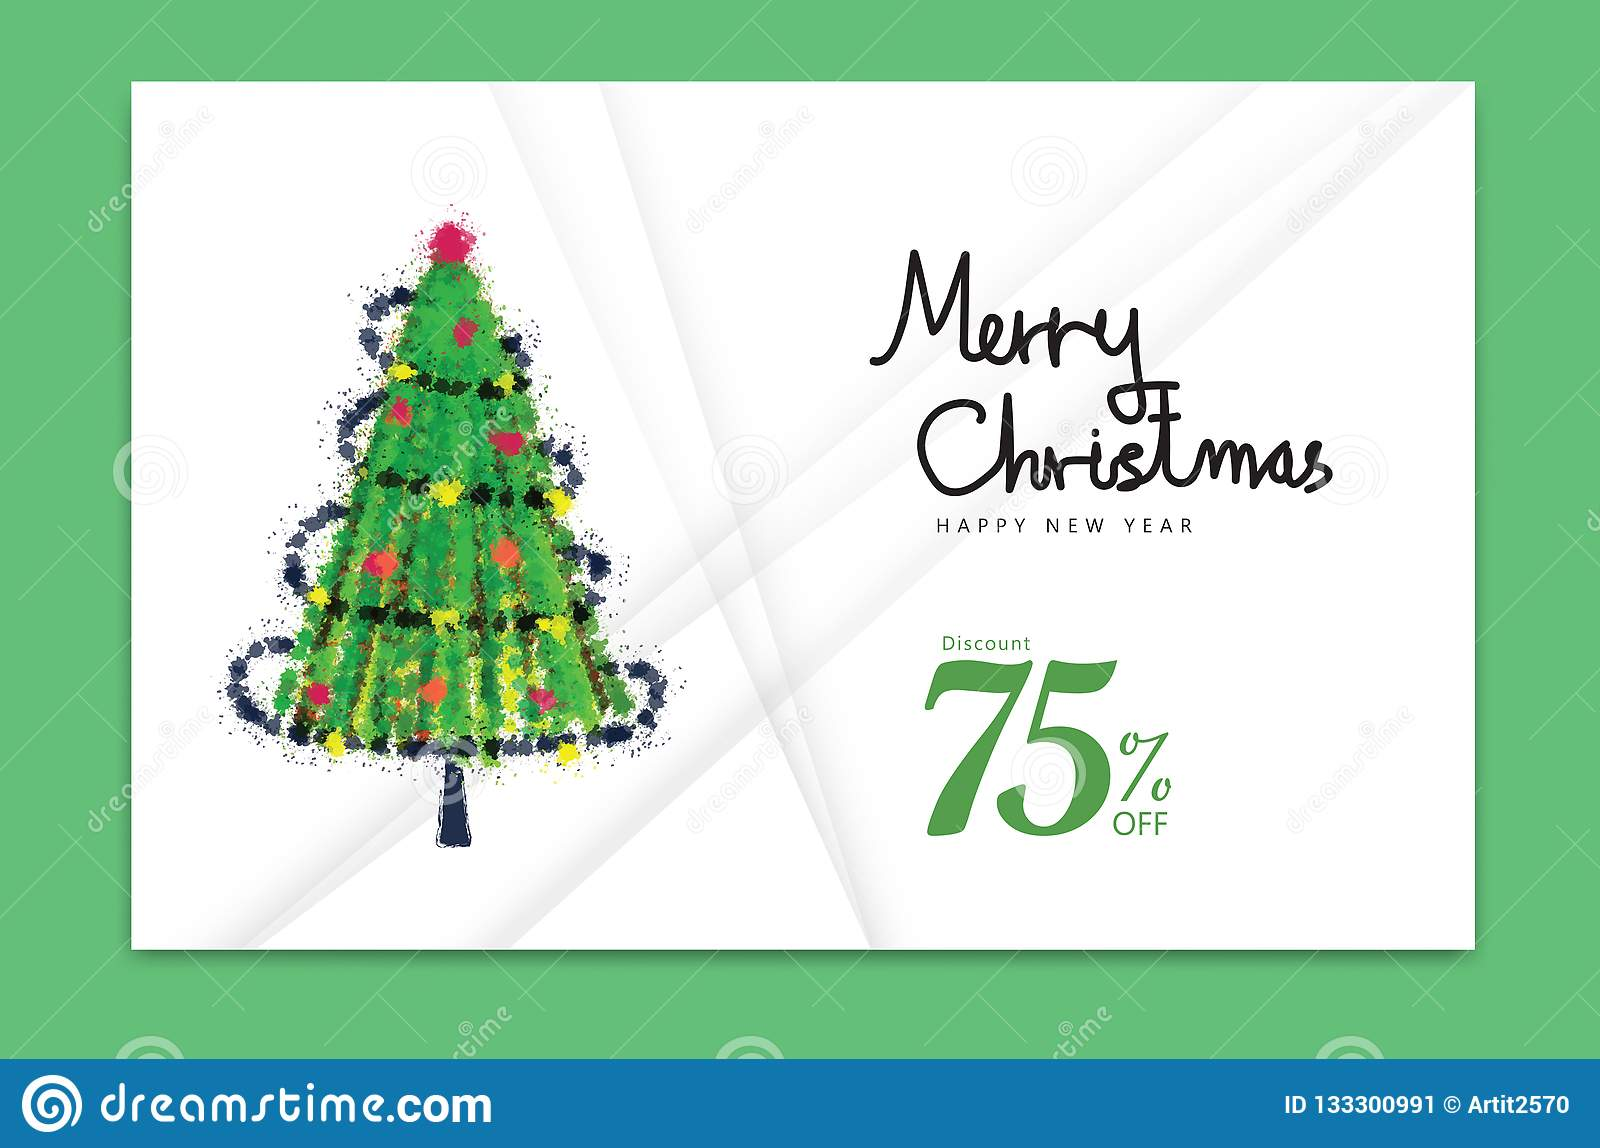 merry christmas card 2019 happy new year banner christmas tree holiday decoration card design brochure flyer template stock vector illustration of happy celebration 133300991 https www dreamstime com merry christmas card happy new year banner tree holiday decoration design brochure flyer template advertisement book cover image133300991